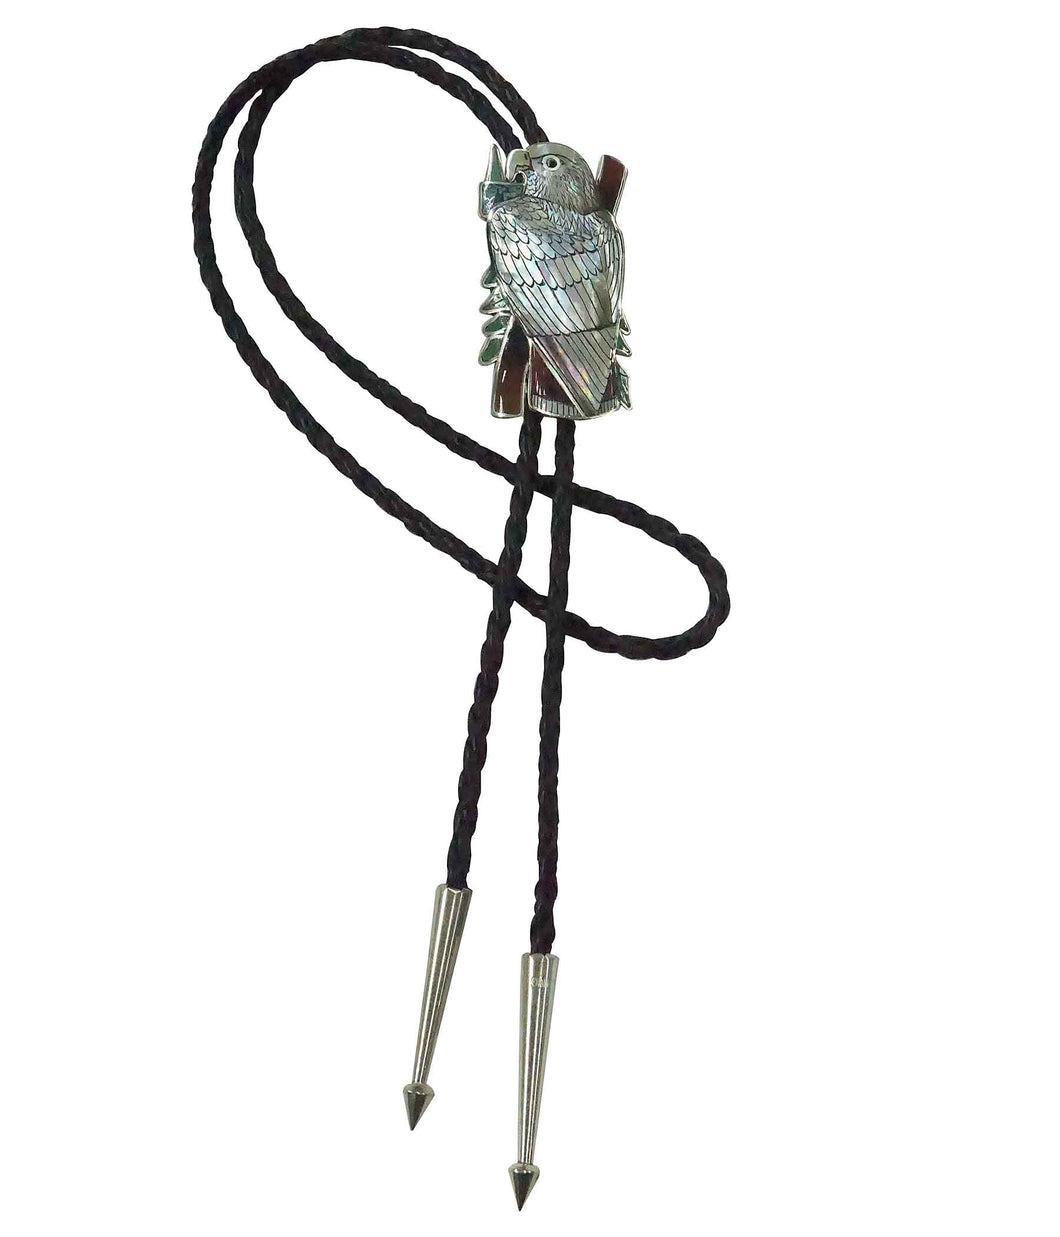 Harlan Coonsis, Bolo Tie, Red Tail Hawk, Silver, Inlay, Zuni Handmade, 42